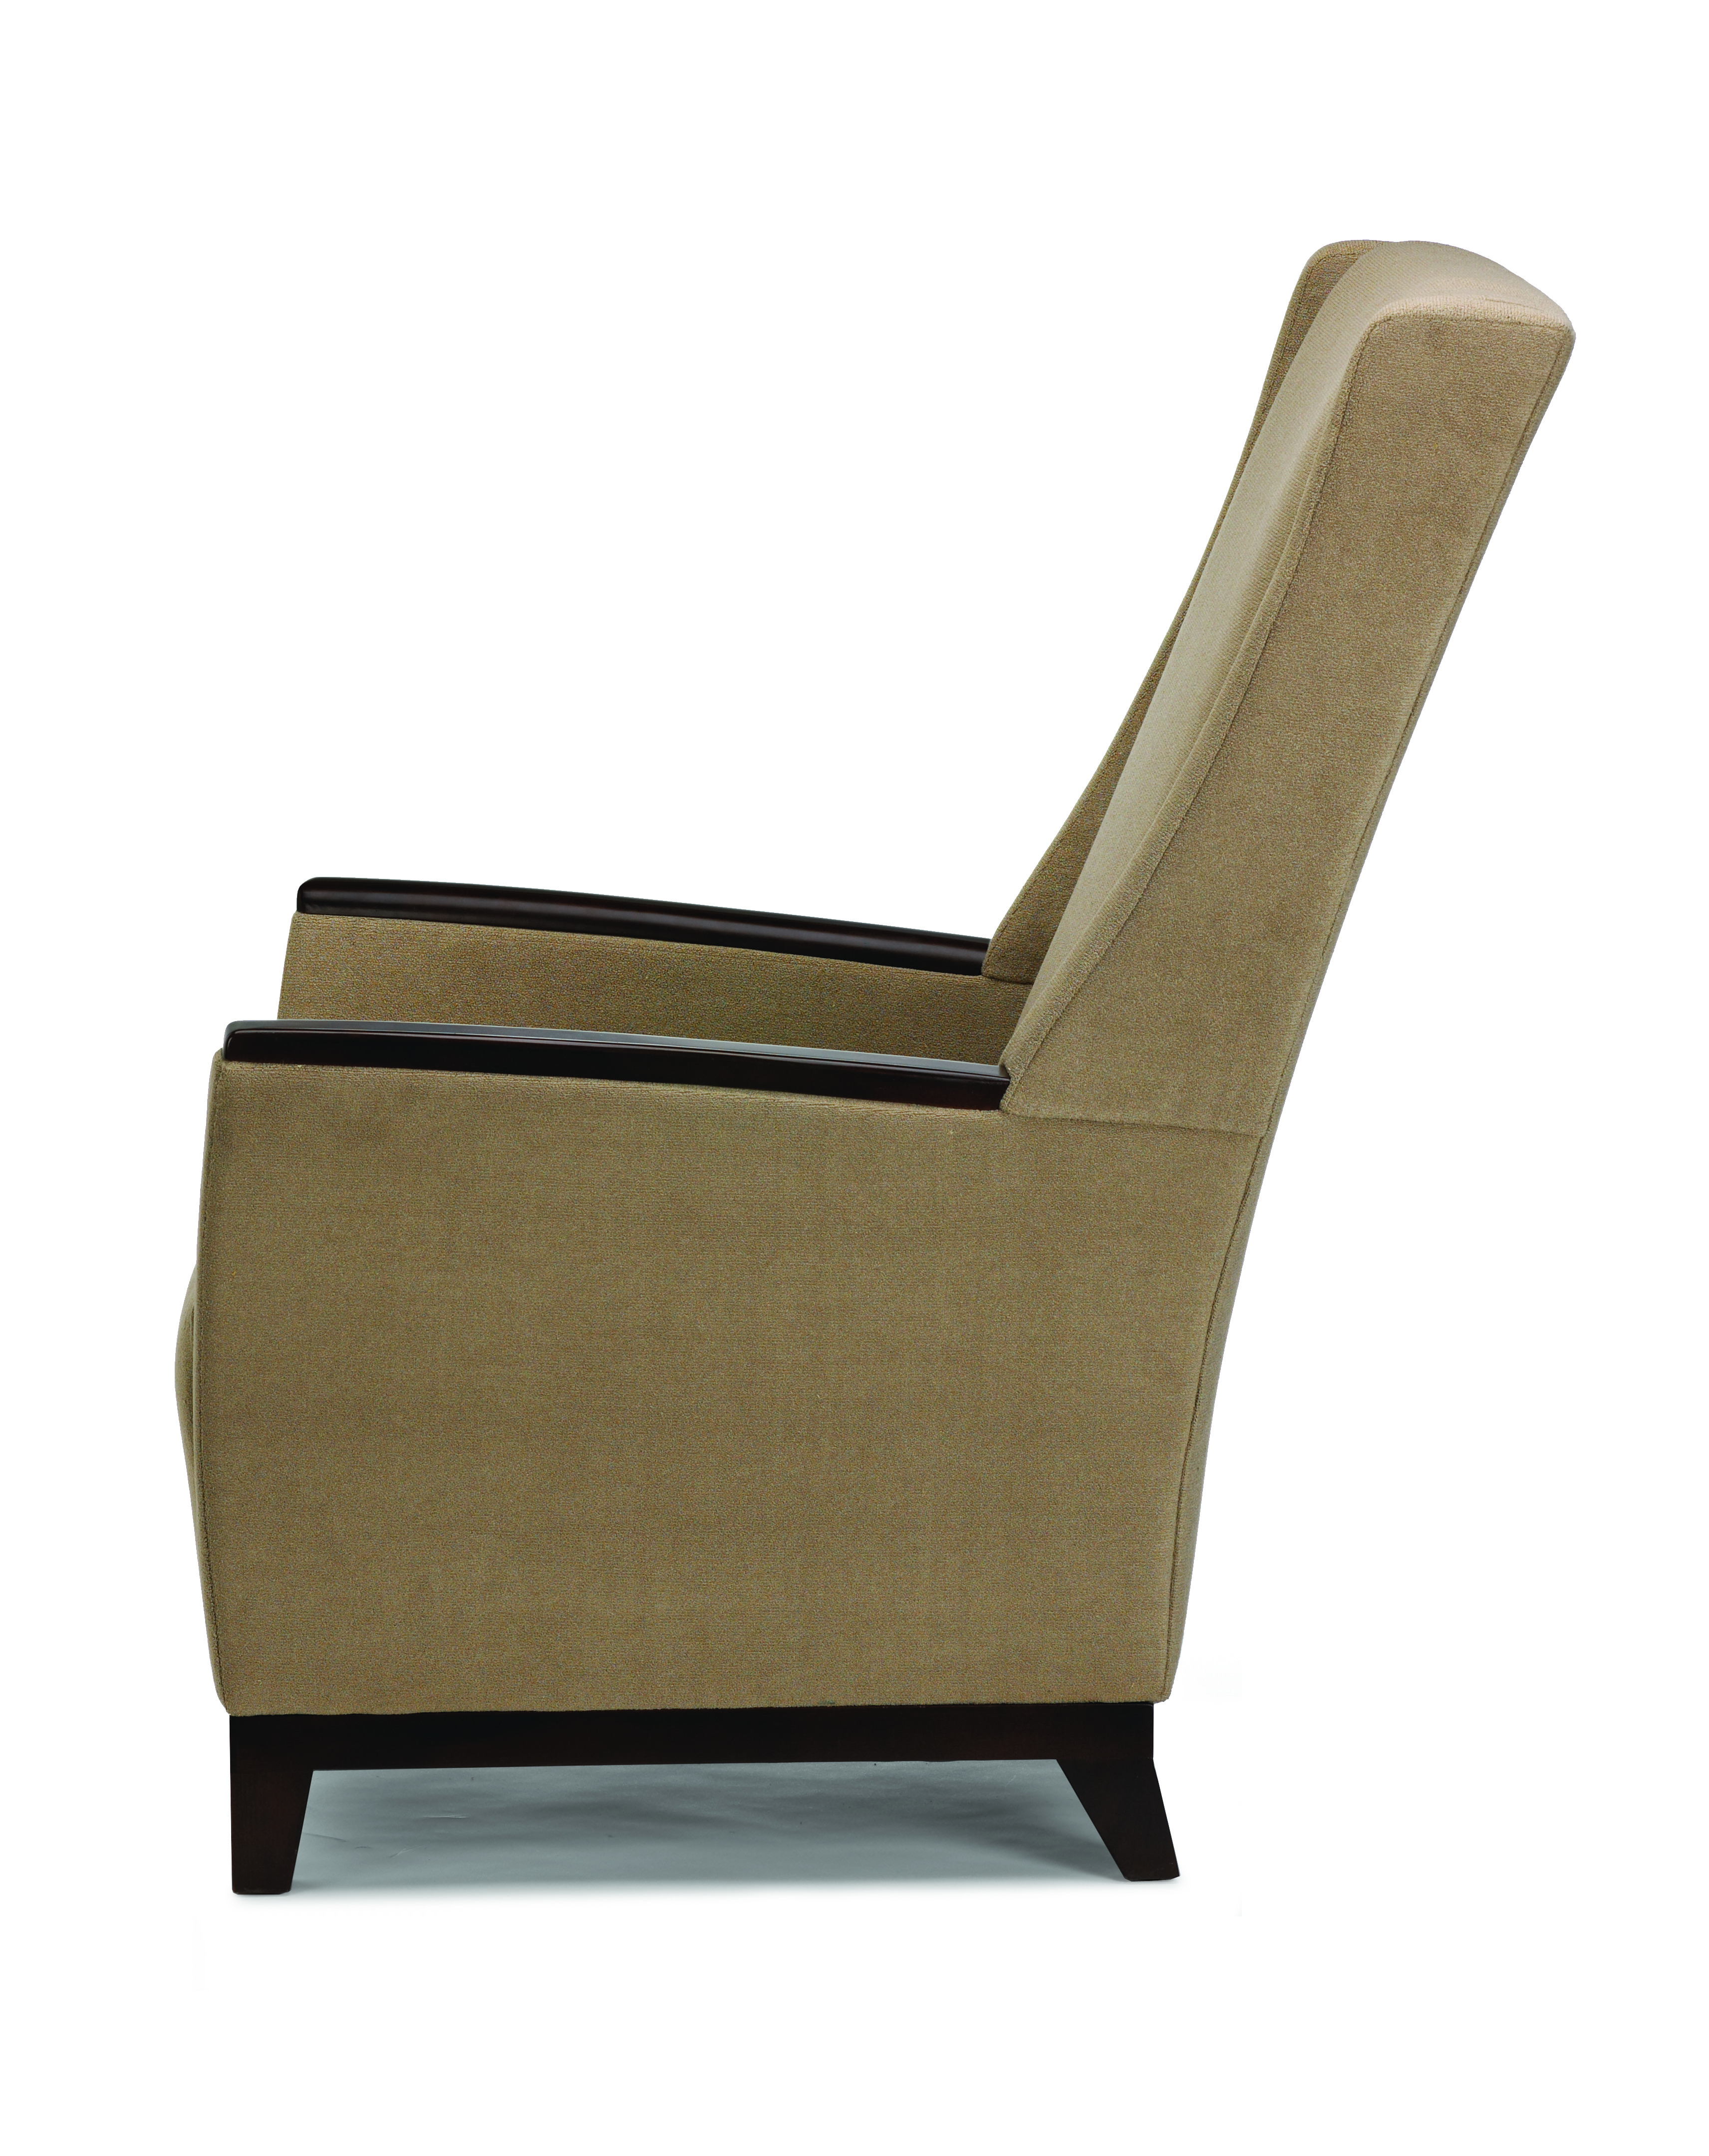 Aspen Lounge Collection David Edward – Aspen Chair